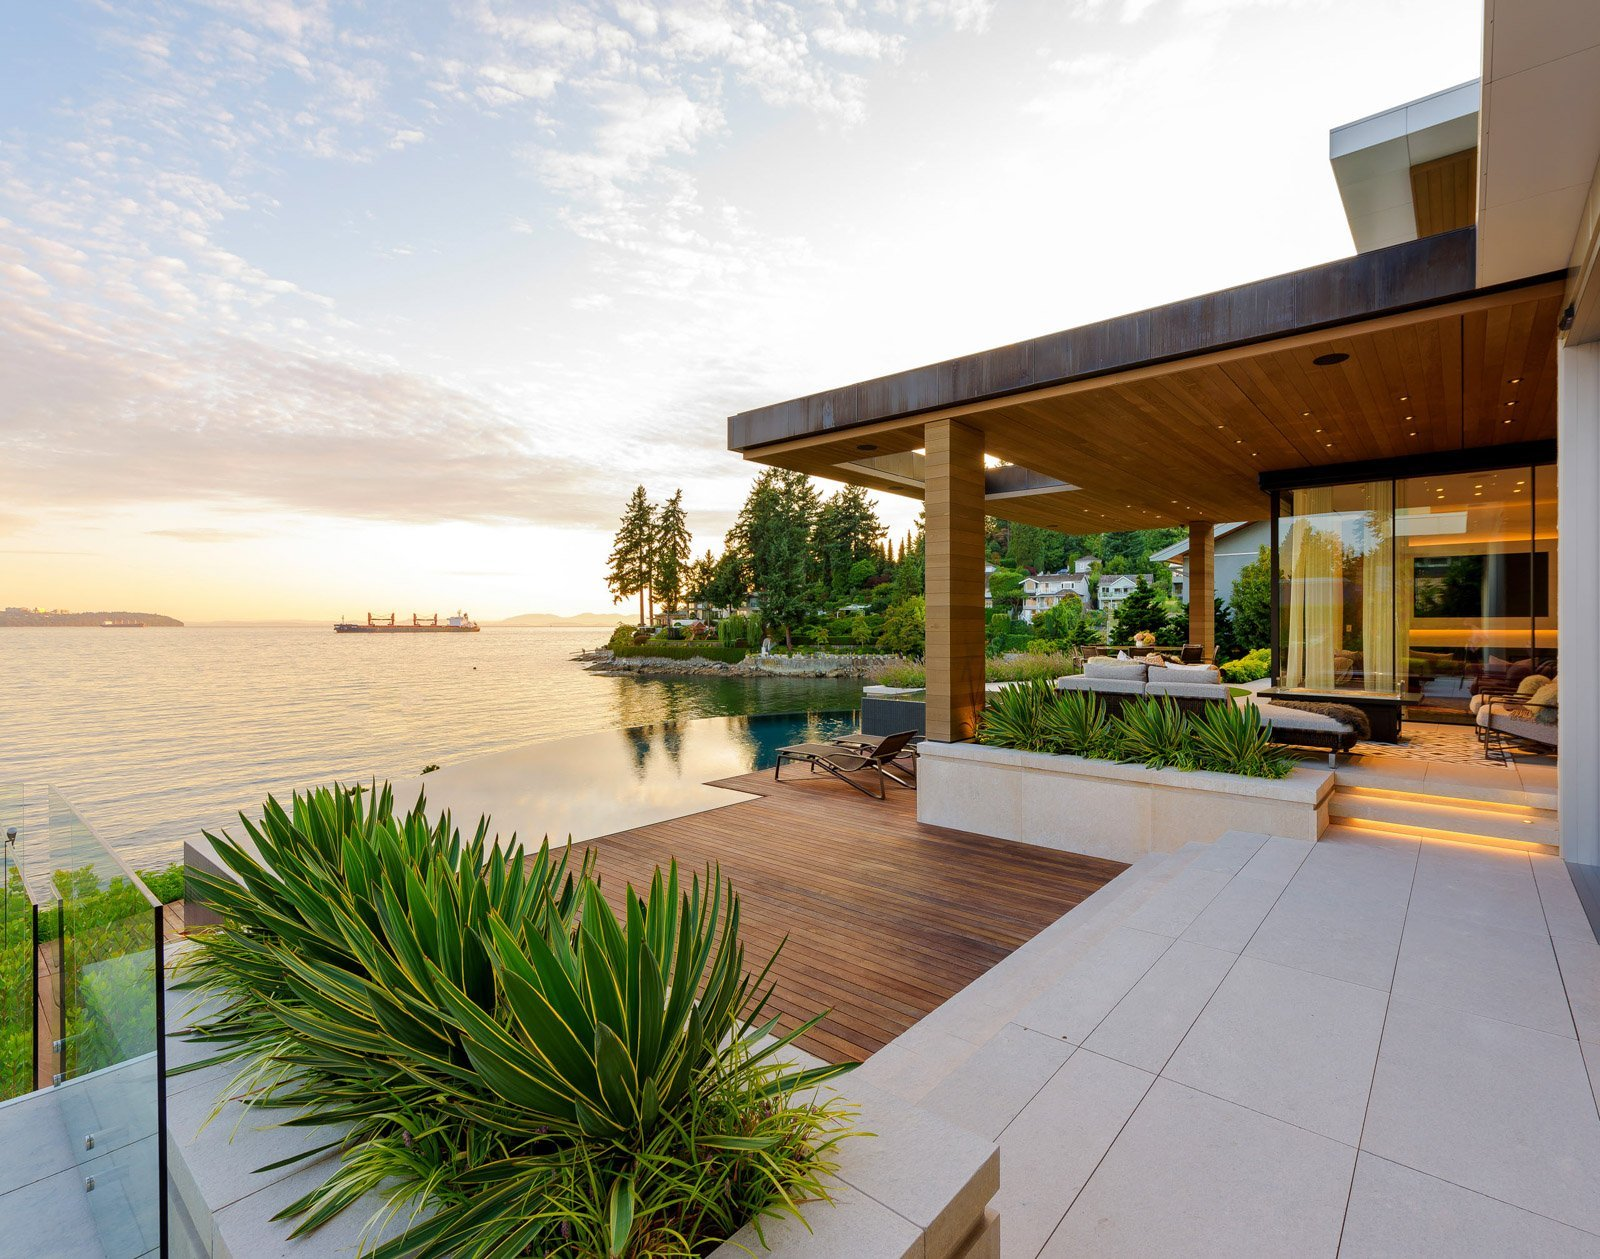 How to Make Your Home Exteriors Beautiful, Comfortable and Inviting